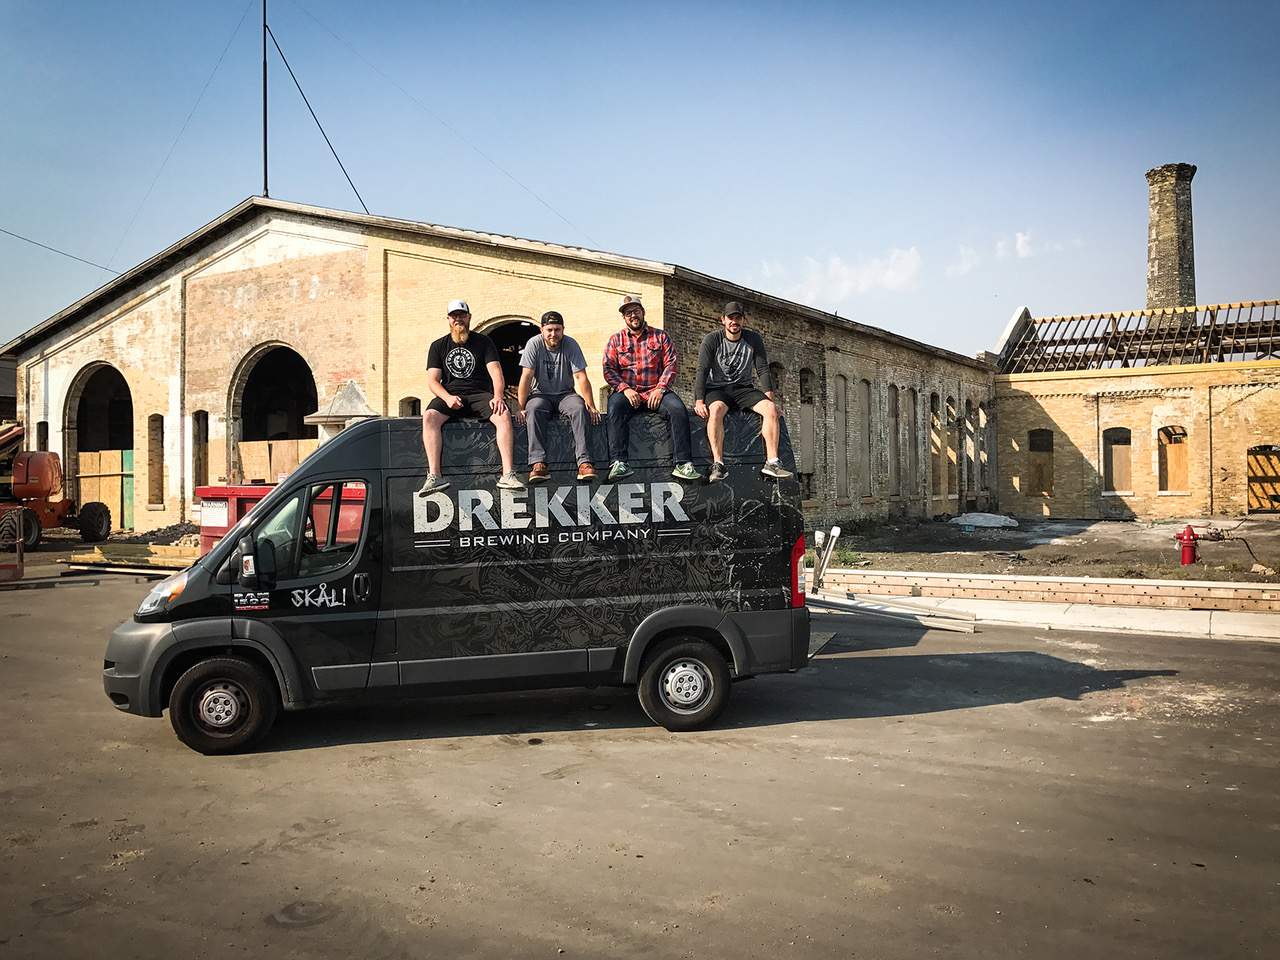 Drekker Brewing is expanding into a second brewery and taproom // Photo via Drekker Brewing